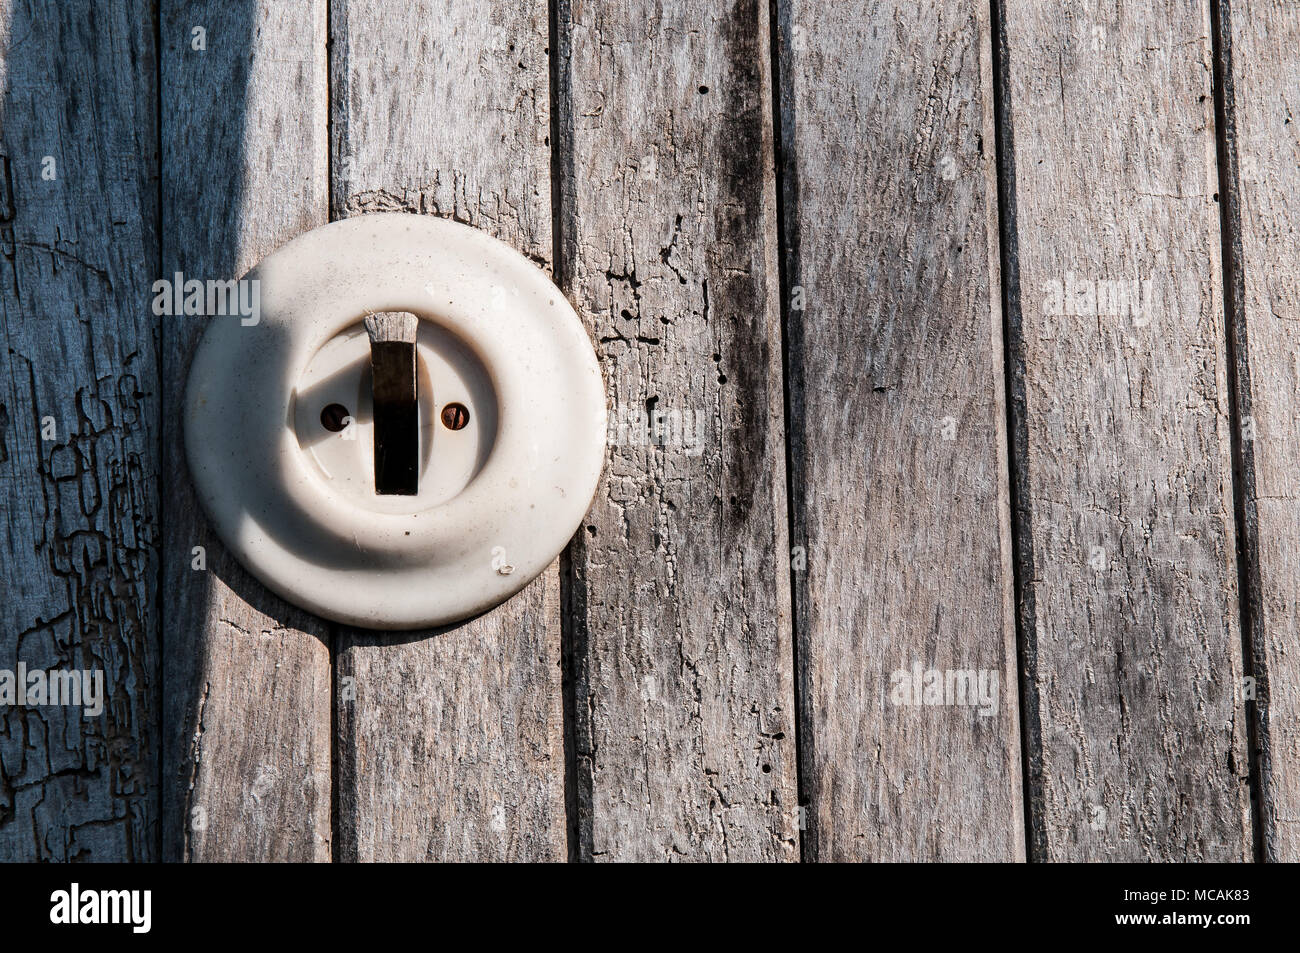 old electric light switch on a wooden wall Stock Photo